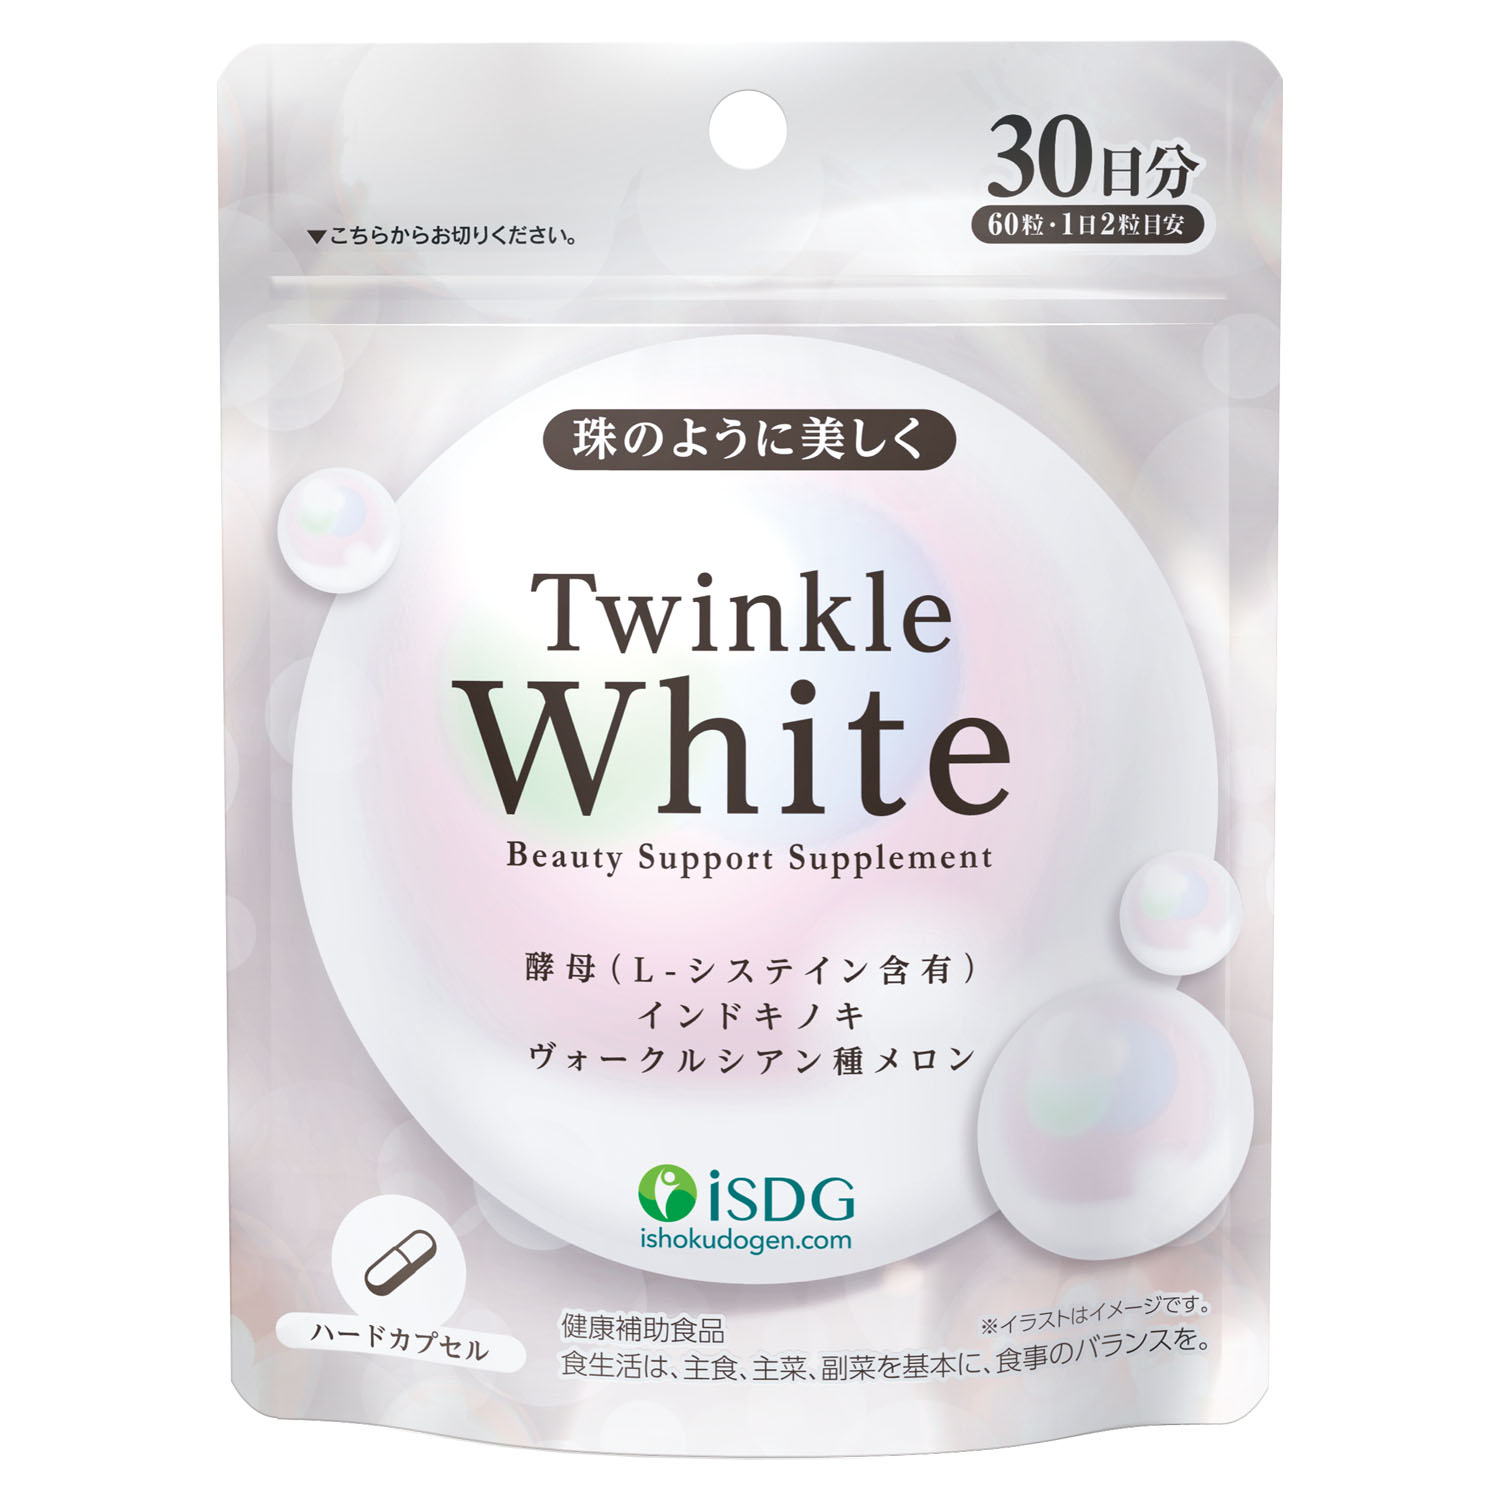 Twinkle White